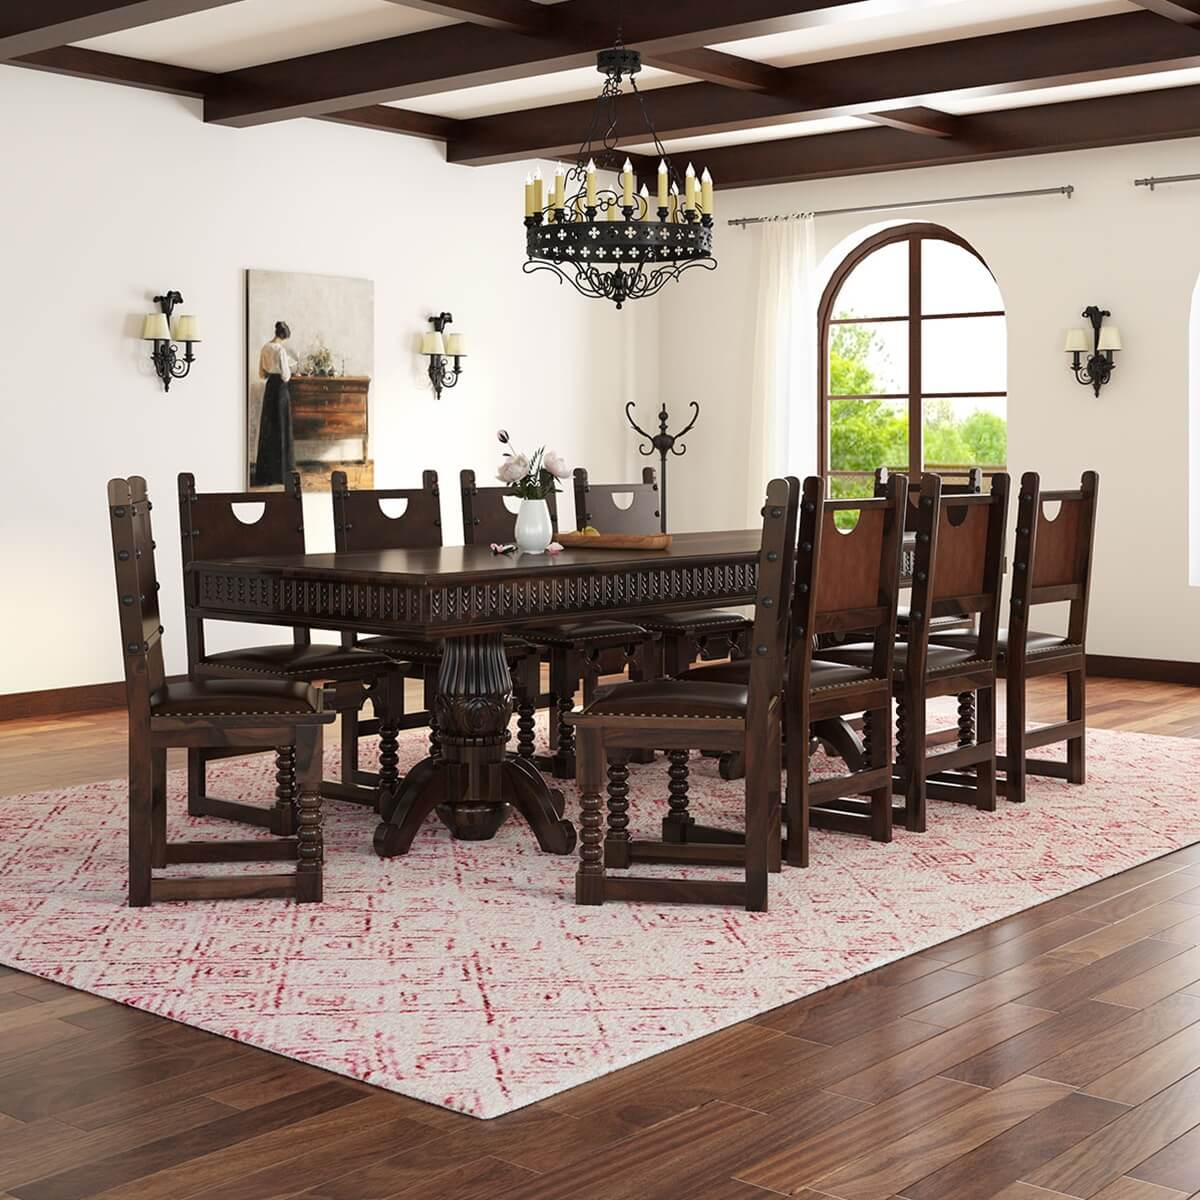 Nottingham solid wood large rustic dining room table chair set for Large dining room sets